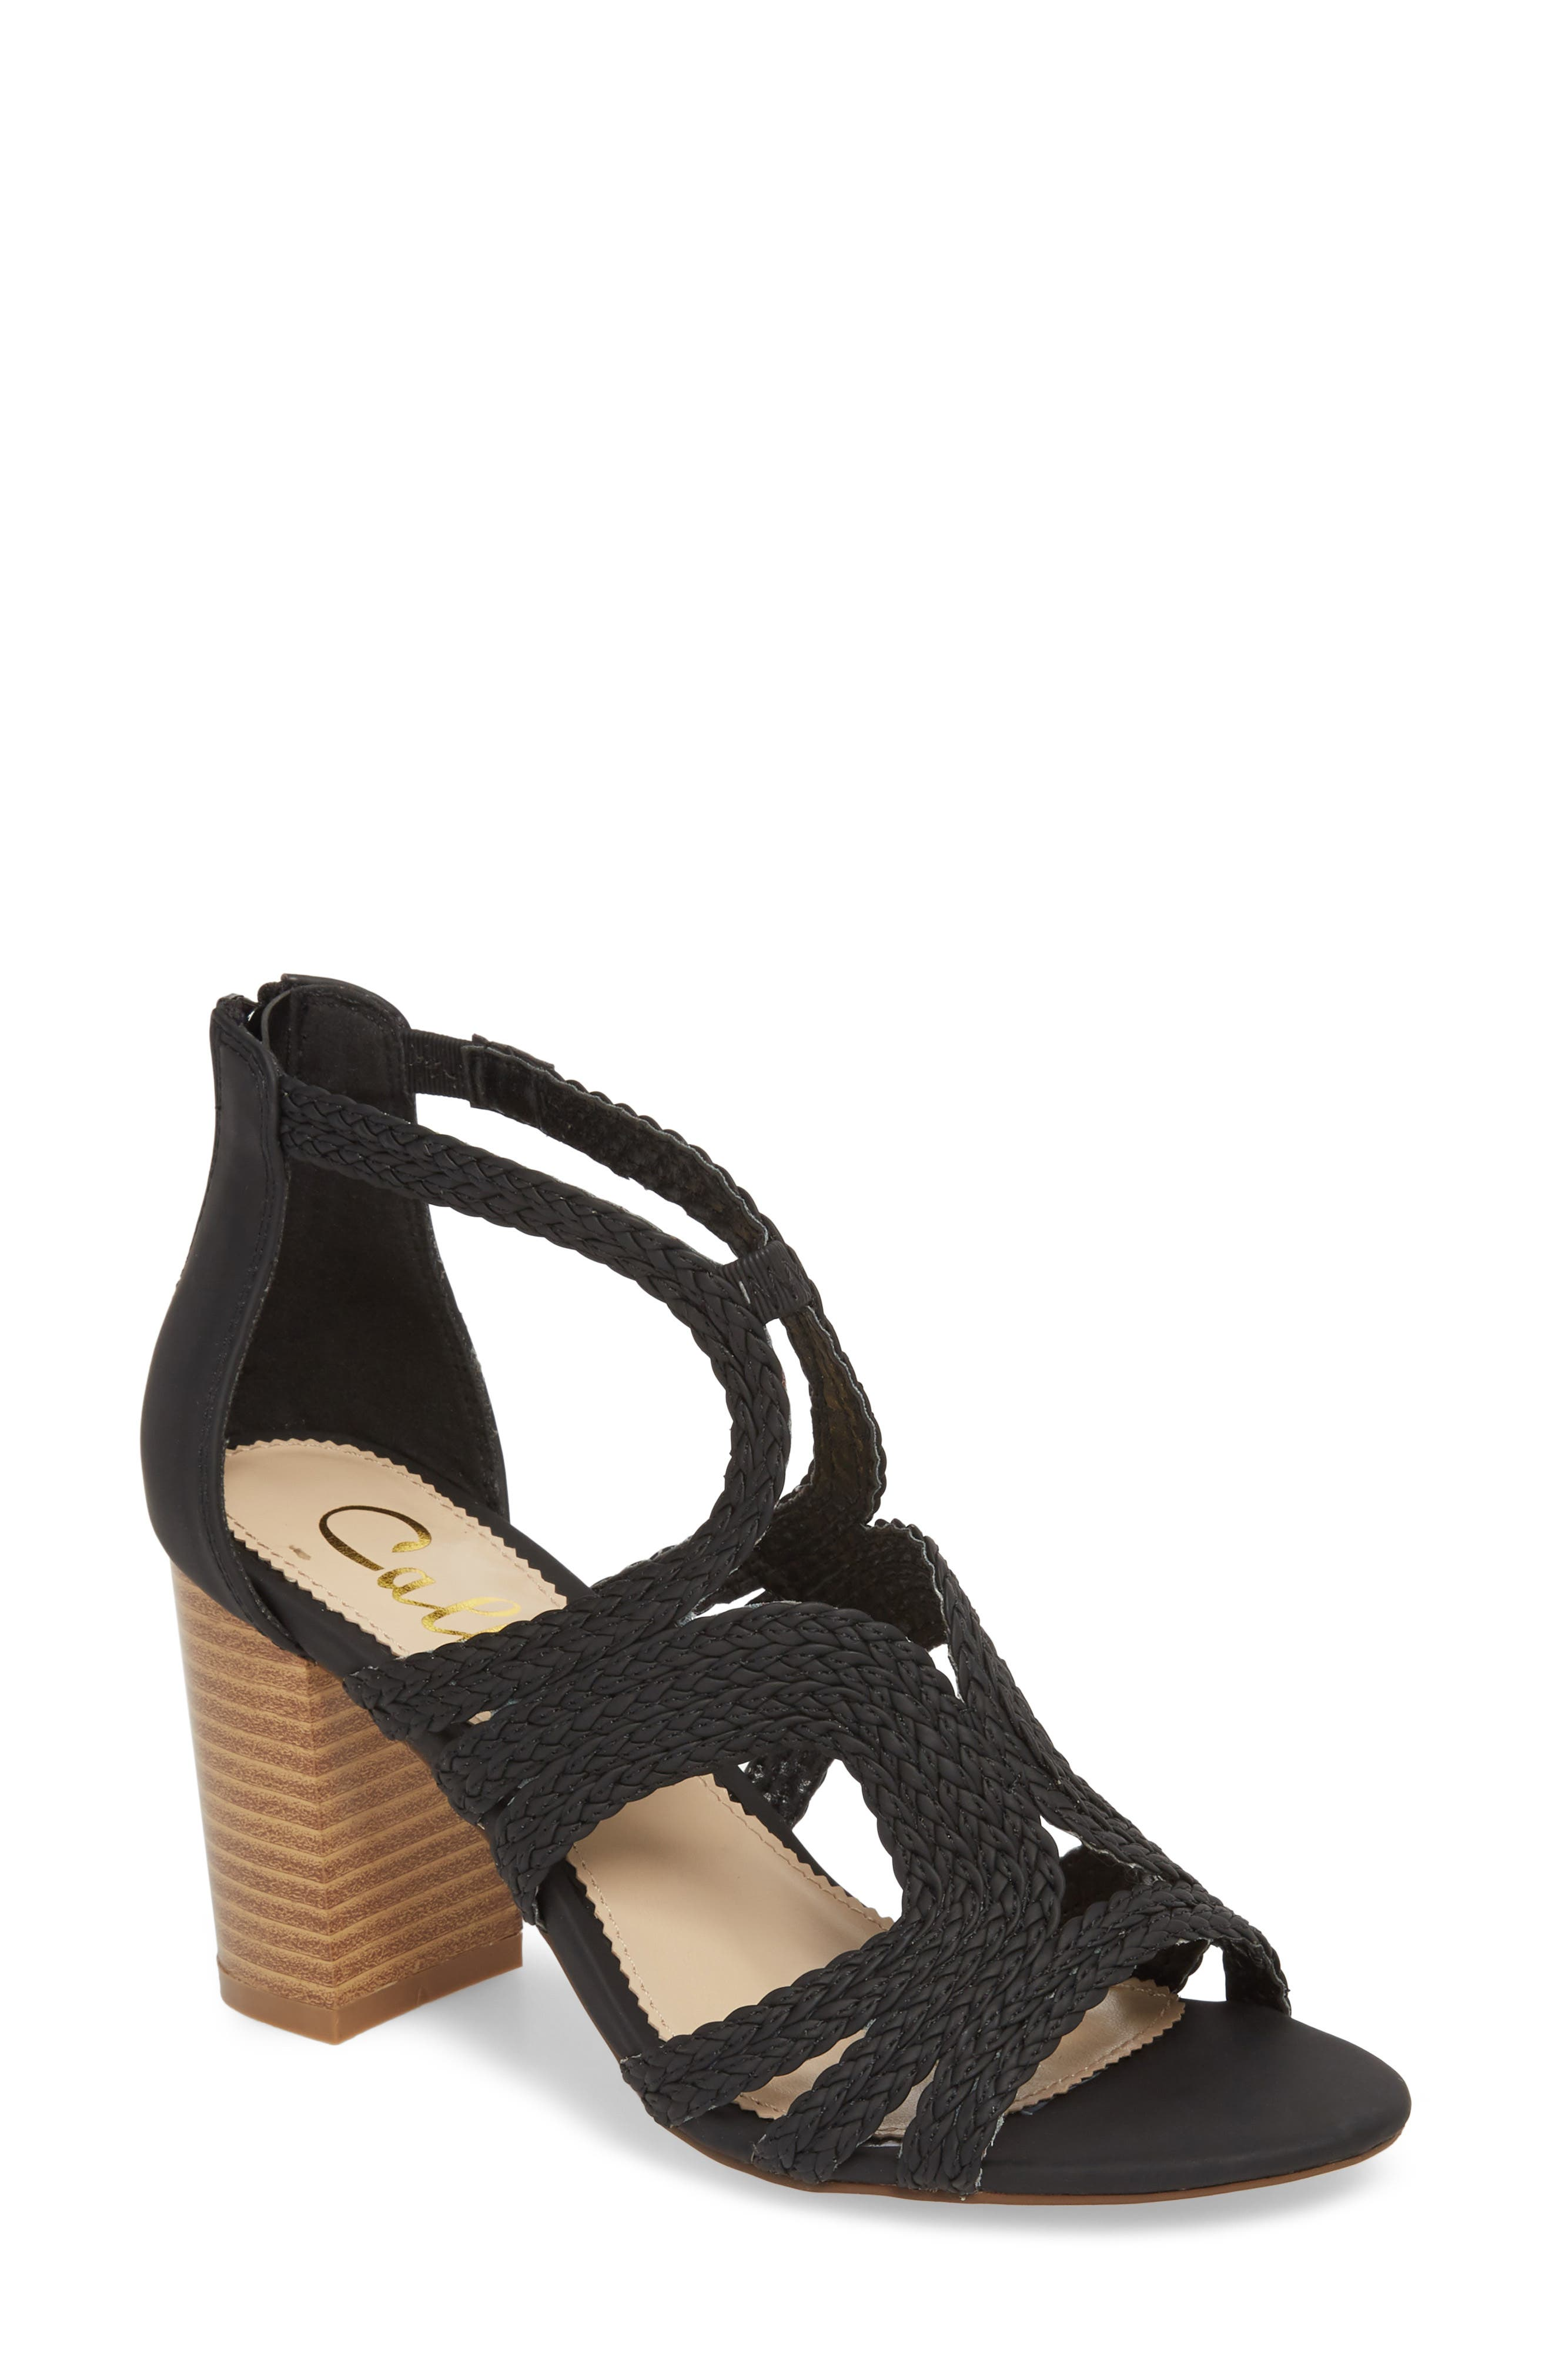 Shindig Block Heel Sandal,                         Main,                         color, BLACK FABRIC